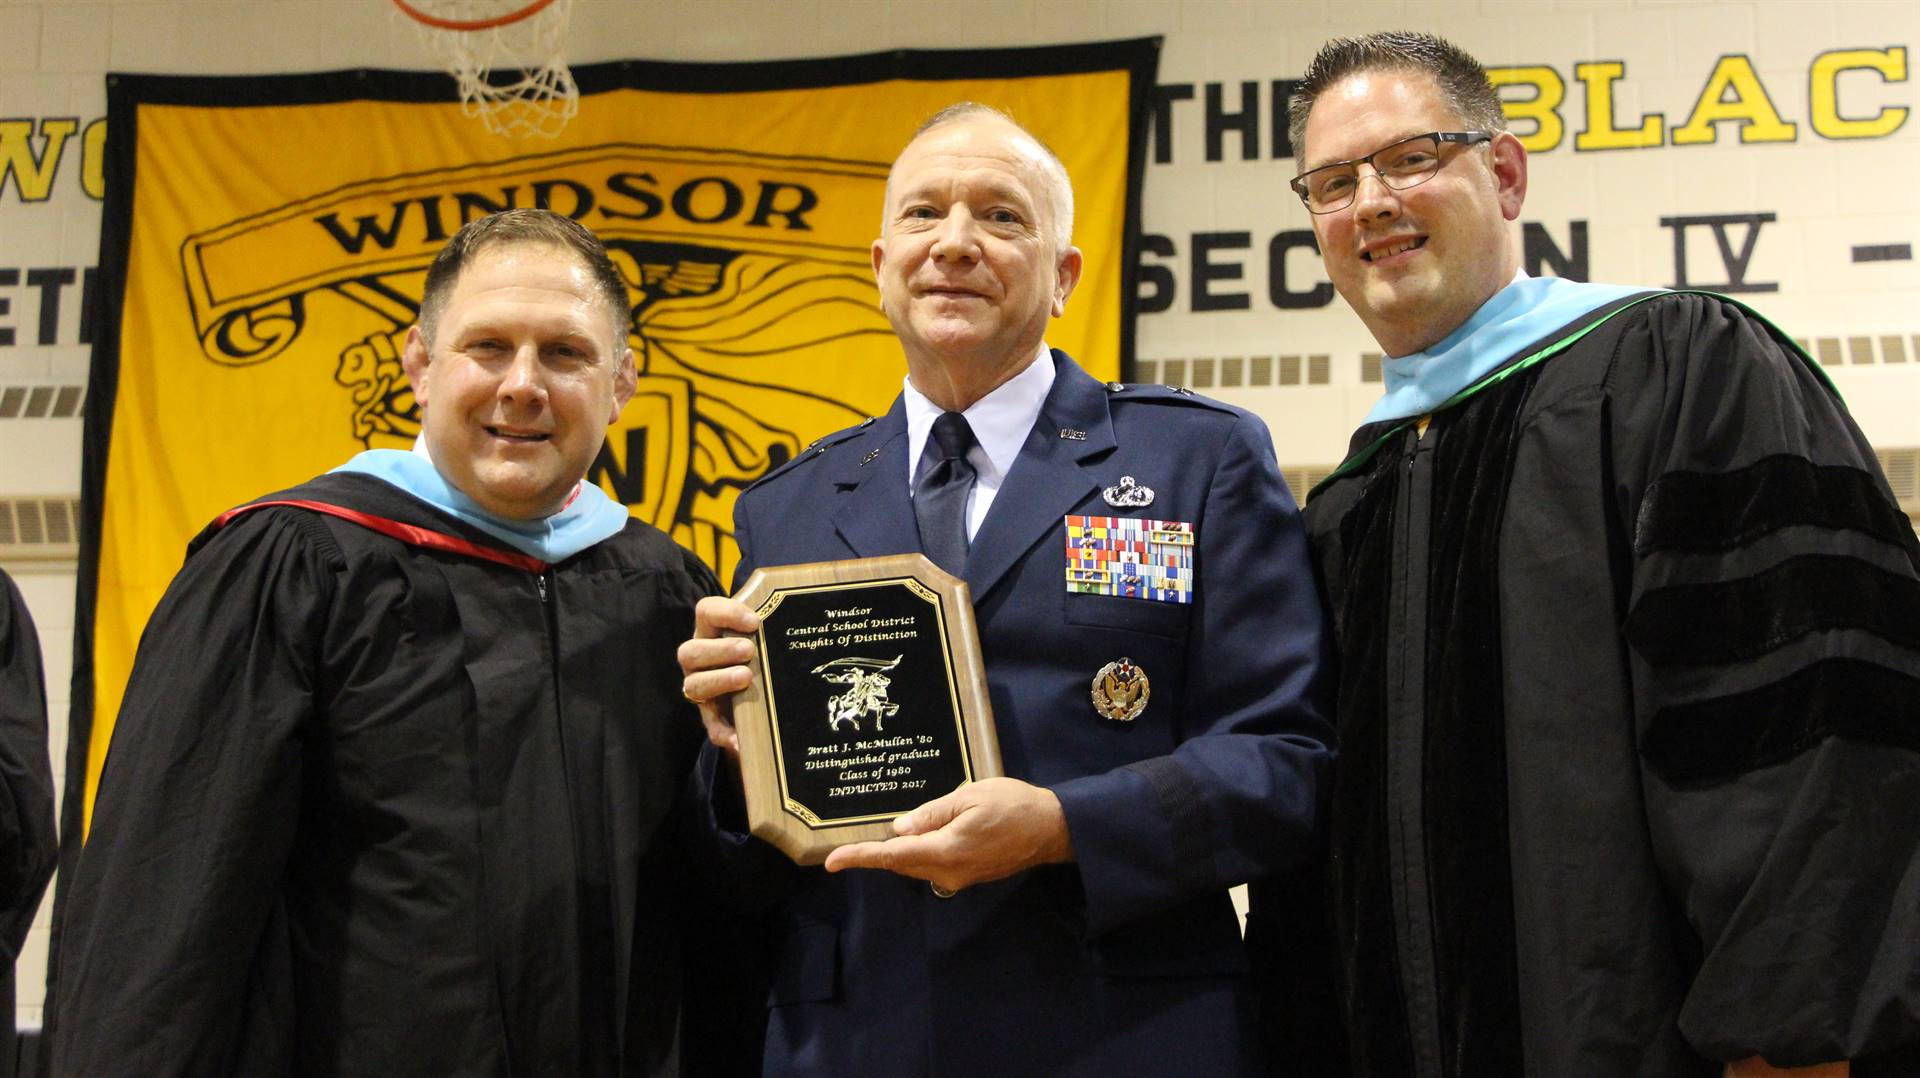 General McMullin holding a plaque between Chris Durdon and Jason Andrews